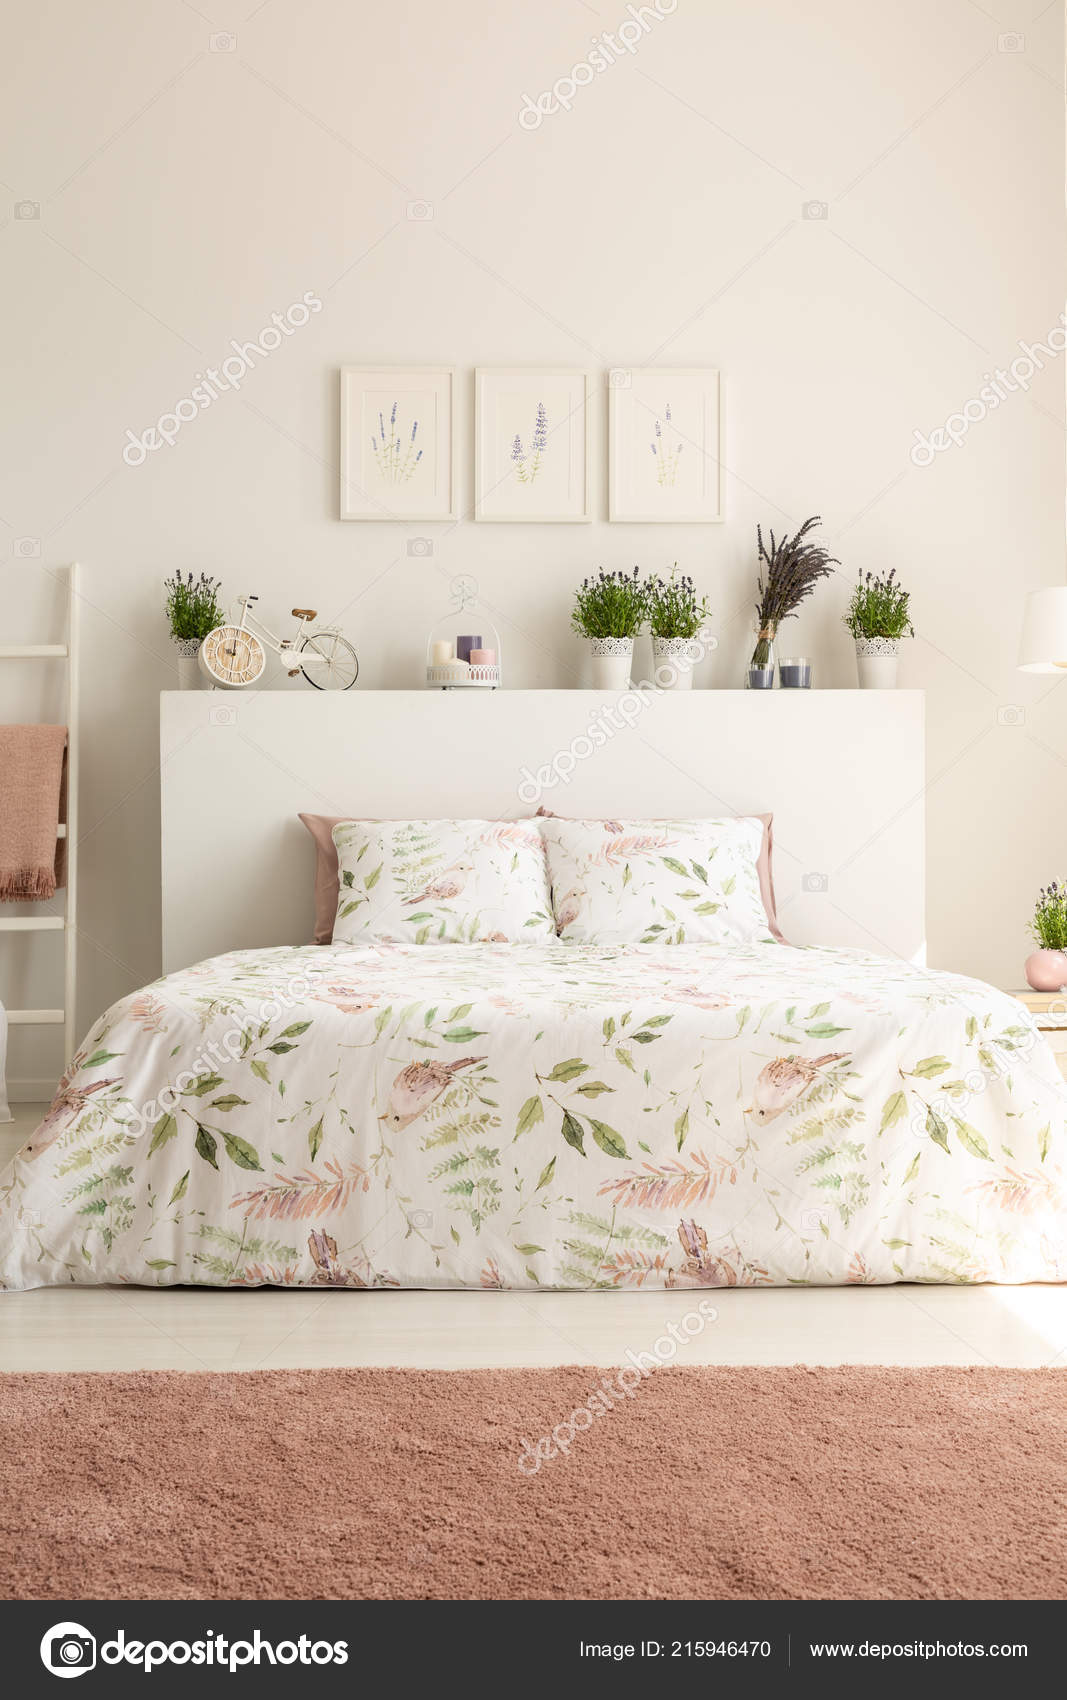 Pink Carpet Posters Bright Bedroom Interior Plants Bed ...